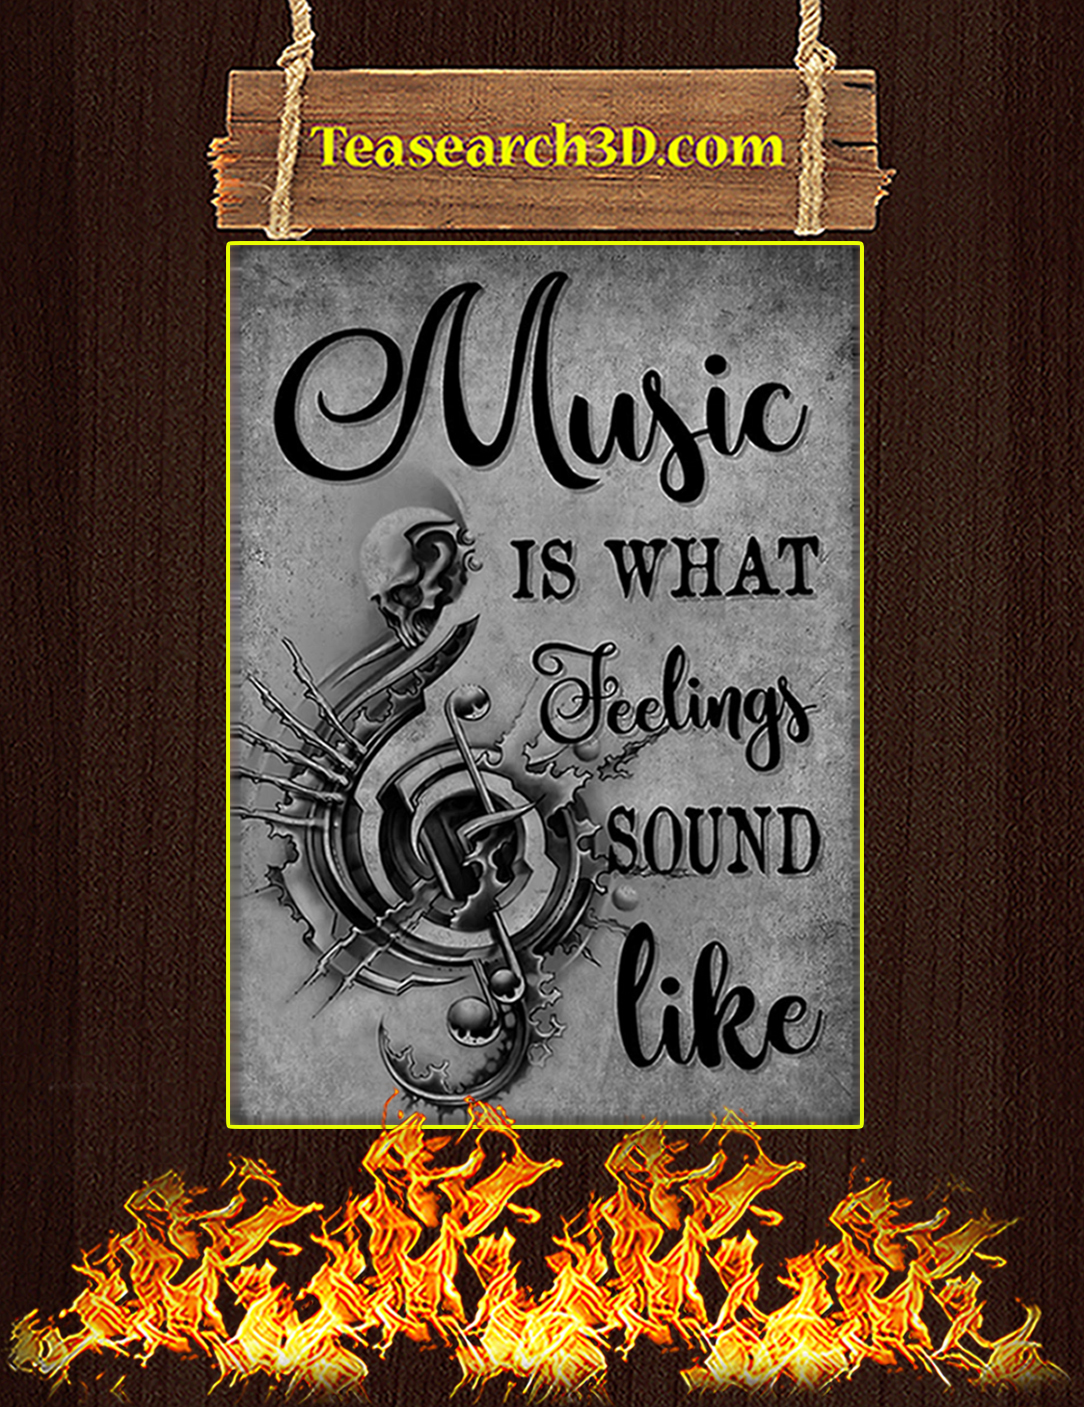 Music is what feeling sound like poster A2